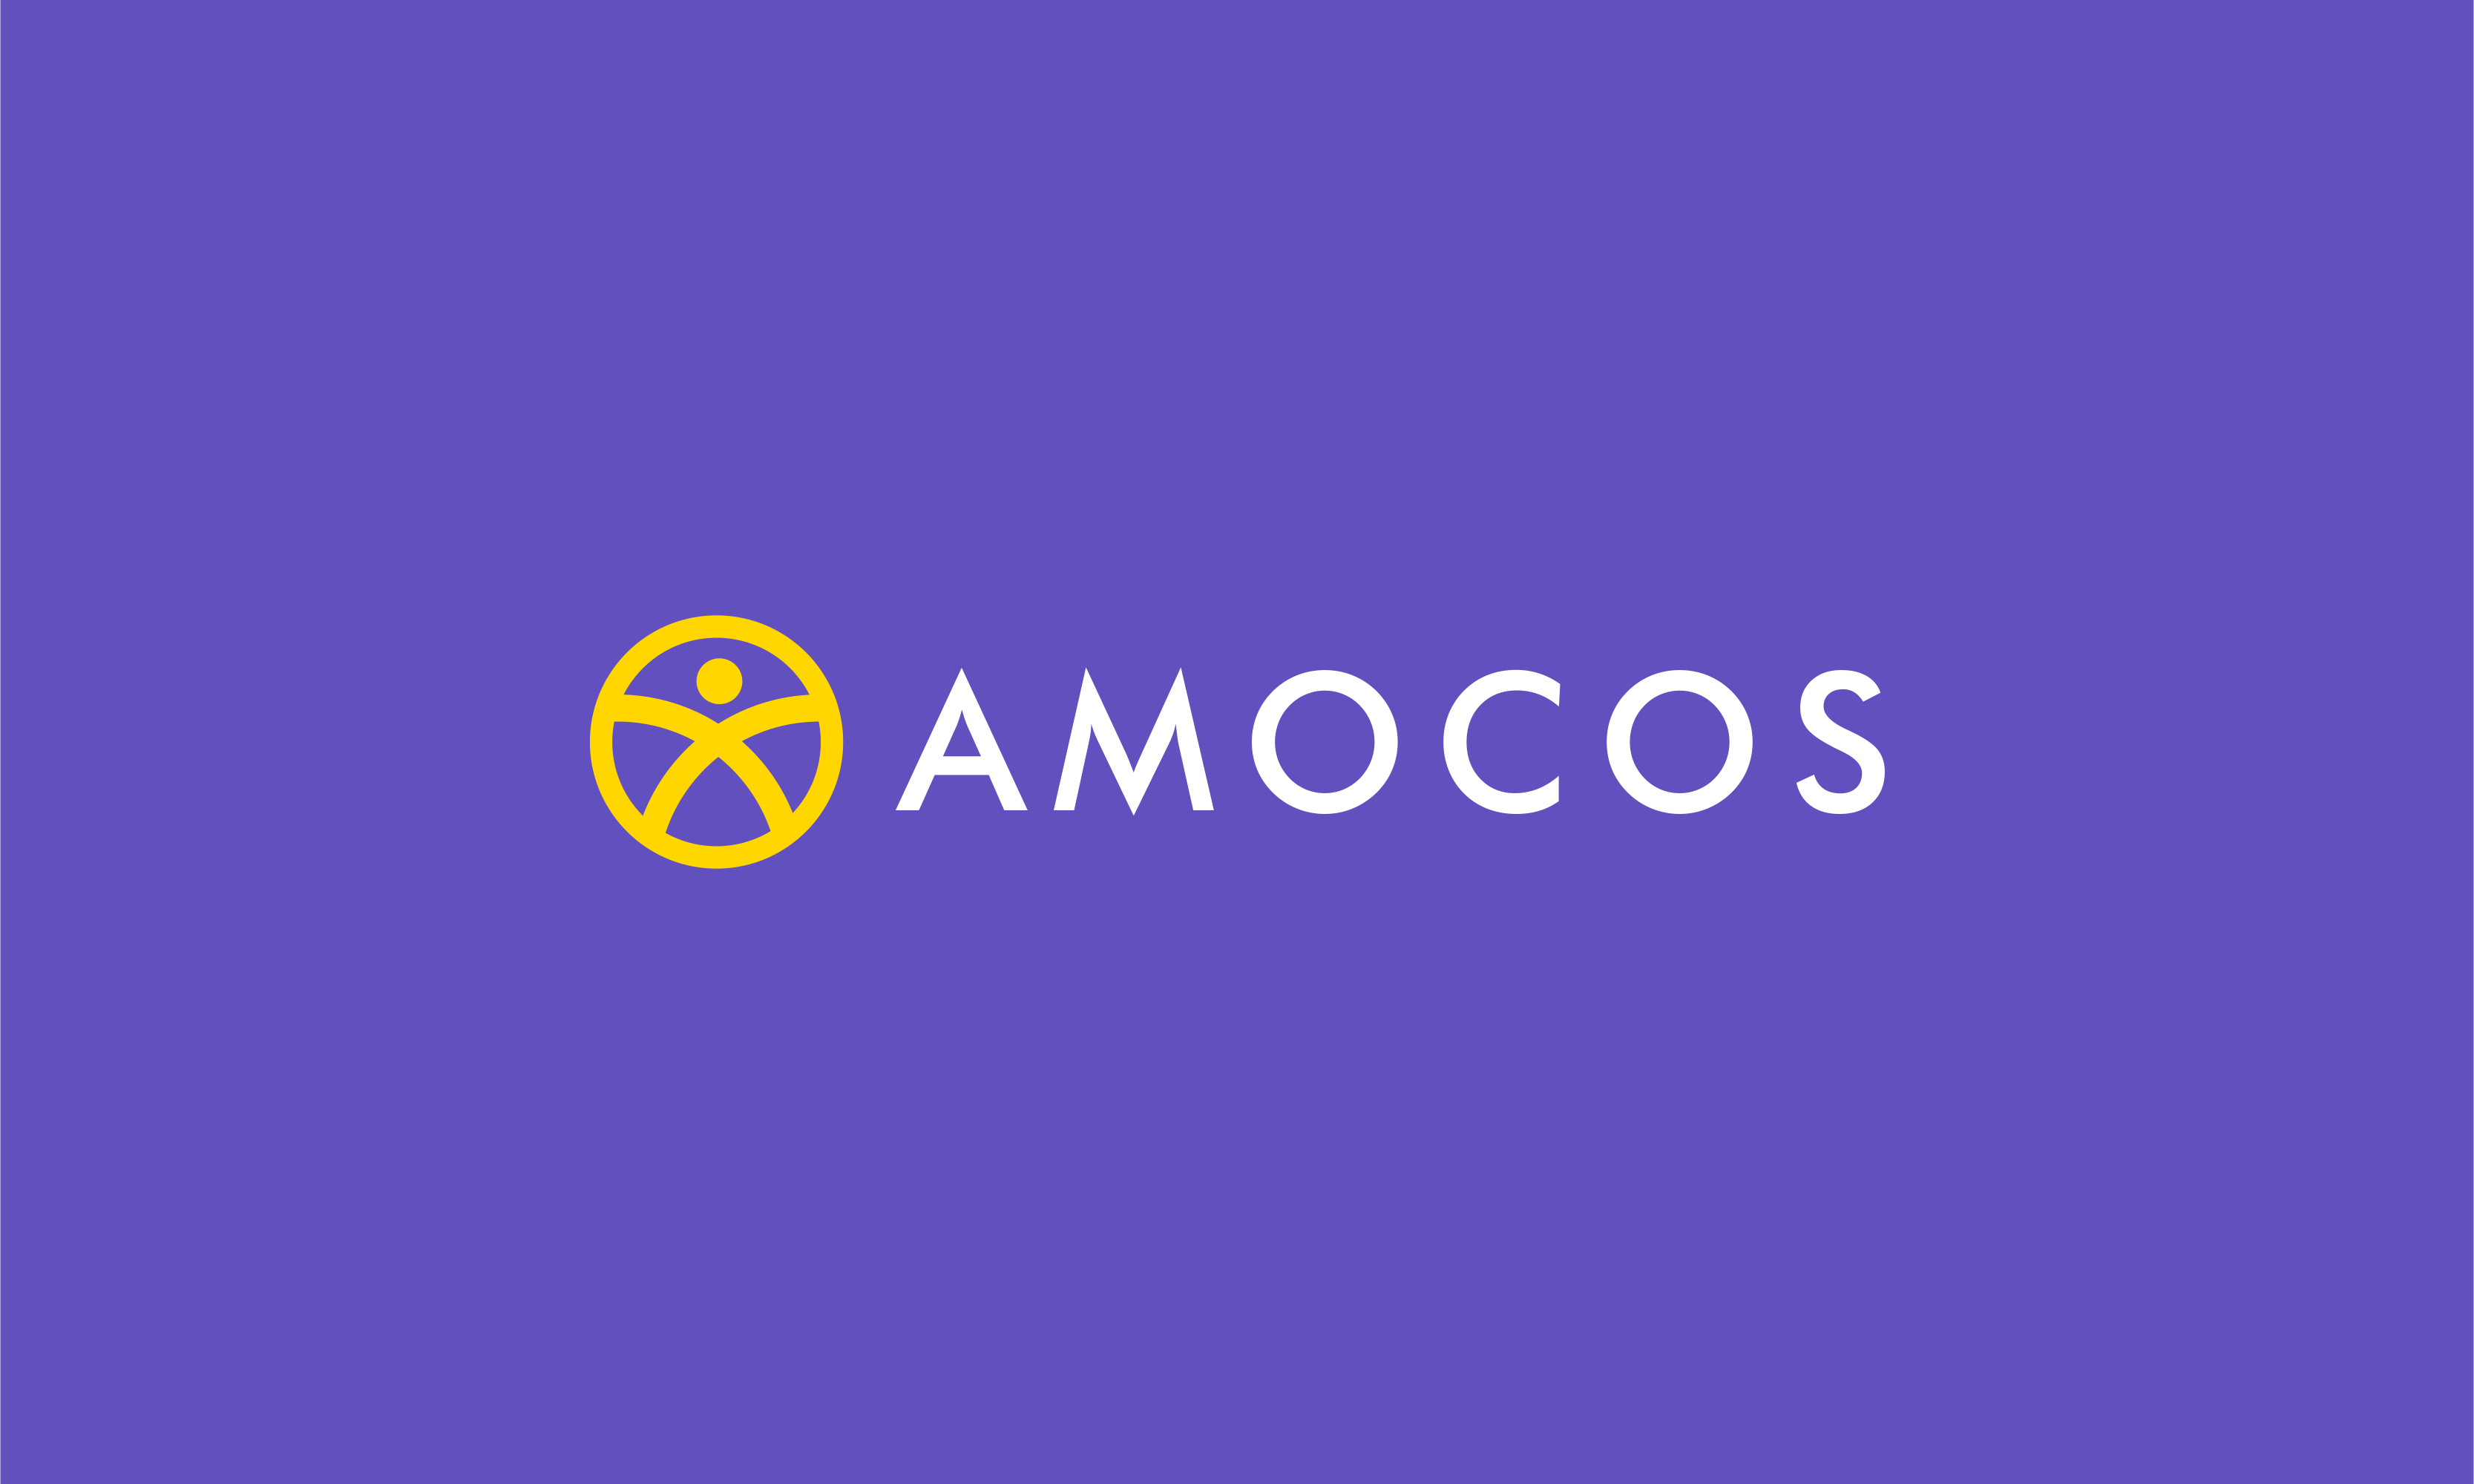 Amocos - Business business name for sale